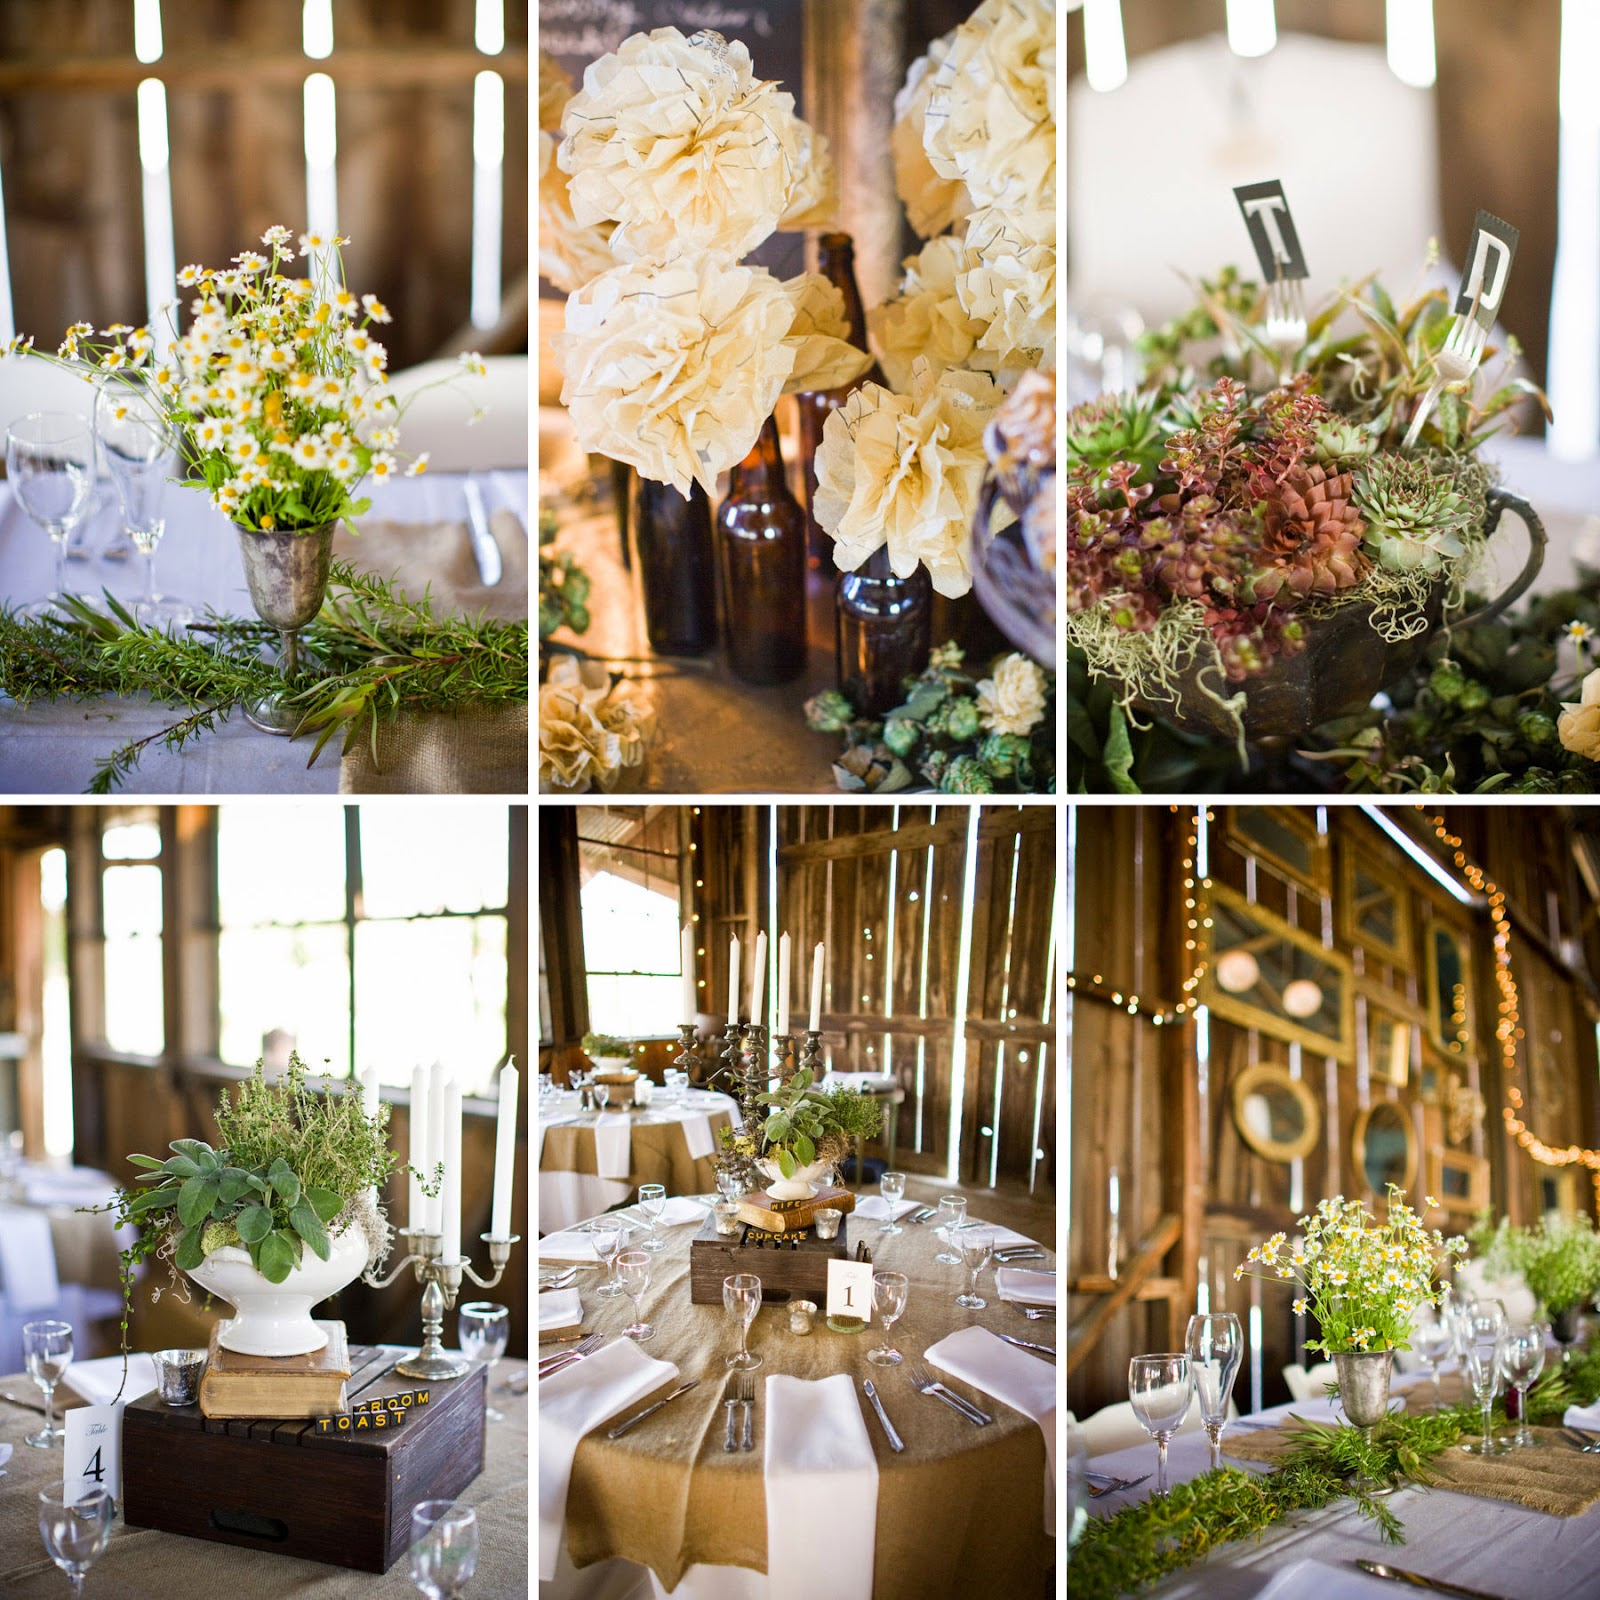 Country Wedding Centerpieces Ideas: Bling Brides: Country Weddings, Yee Haw! Country Centerpieces